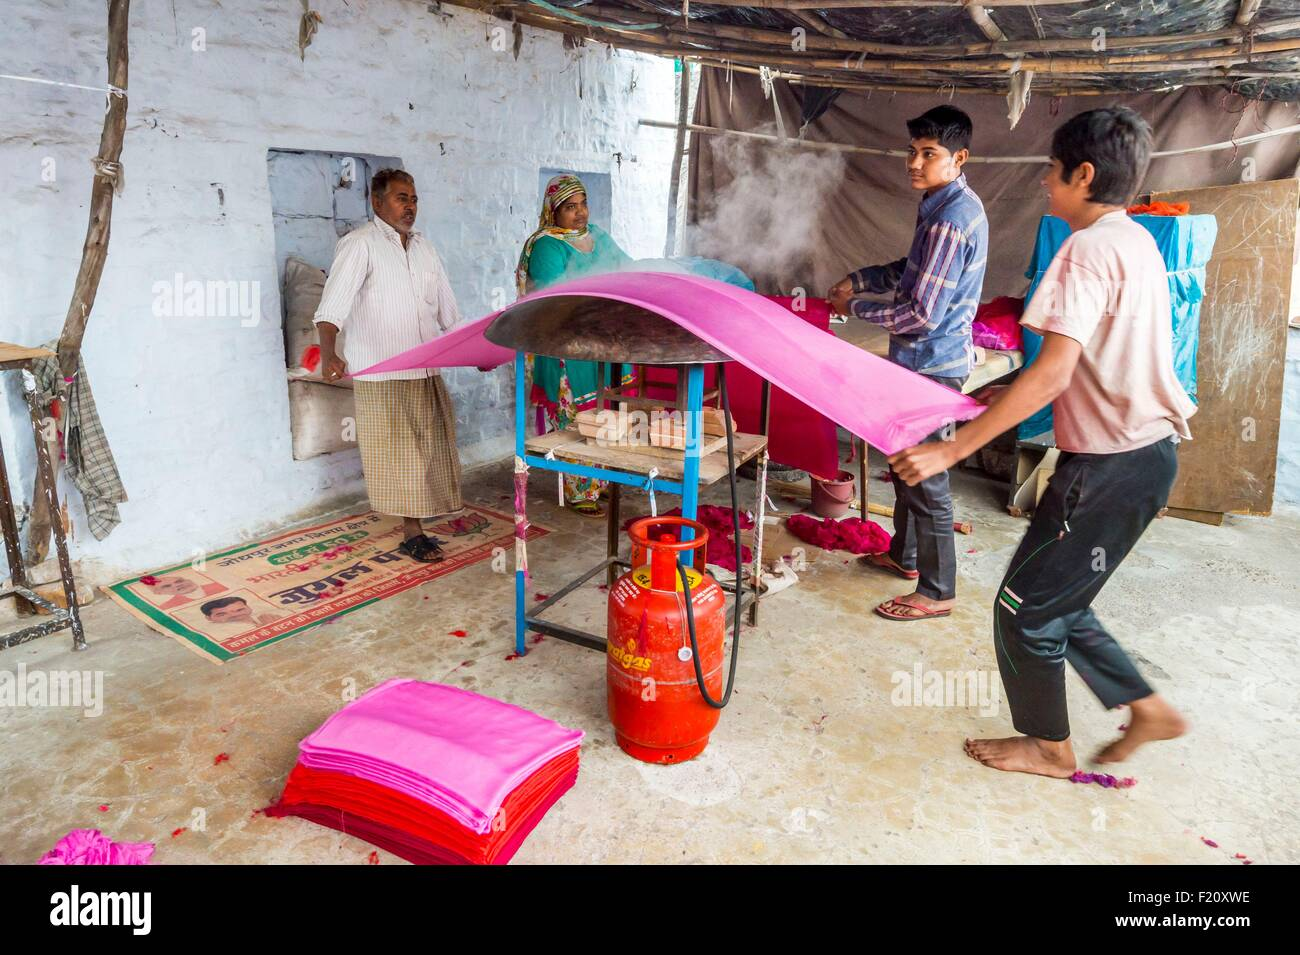 India, Rajasthan state, Jodhpur, the dying area - Stock Image